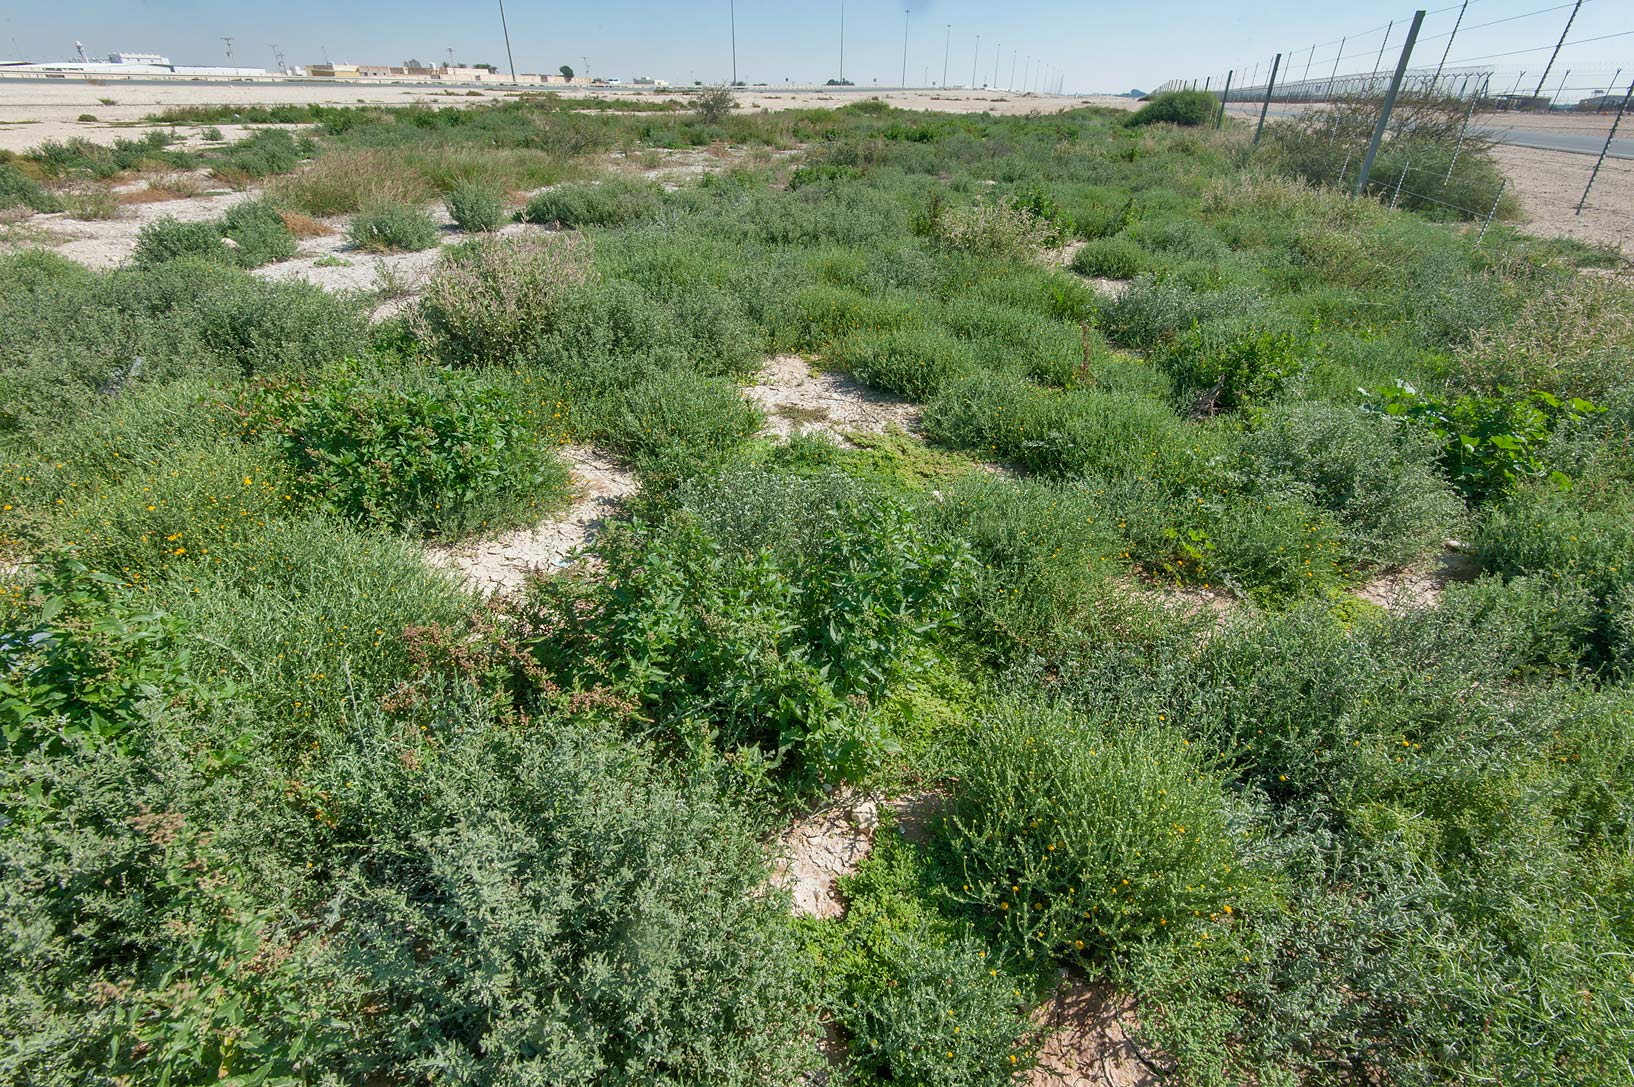 Lush vegetation in roadside depression near Dukhan Highway near Ash-Shahaniyah. Qatar